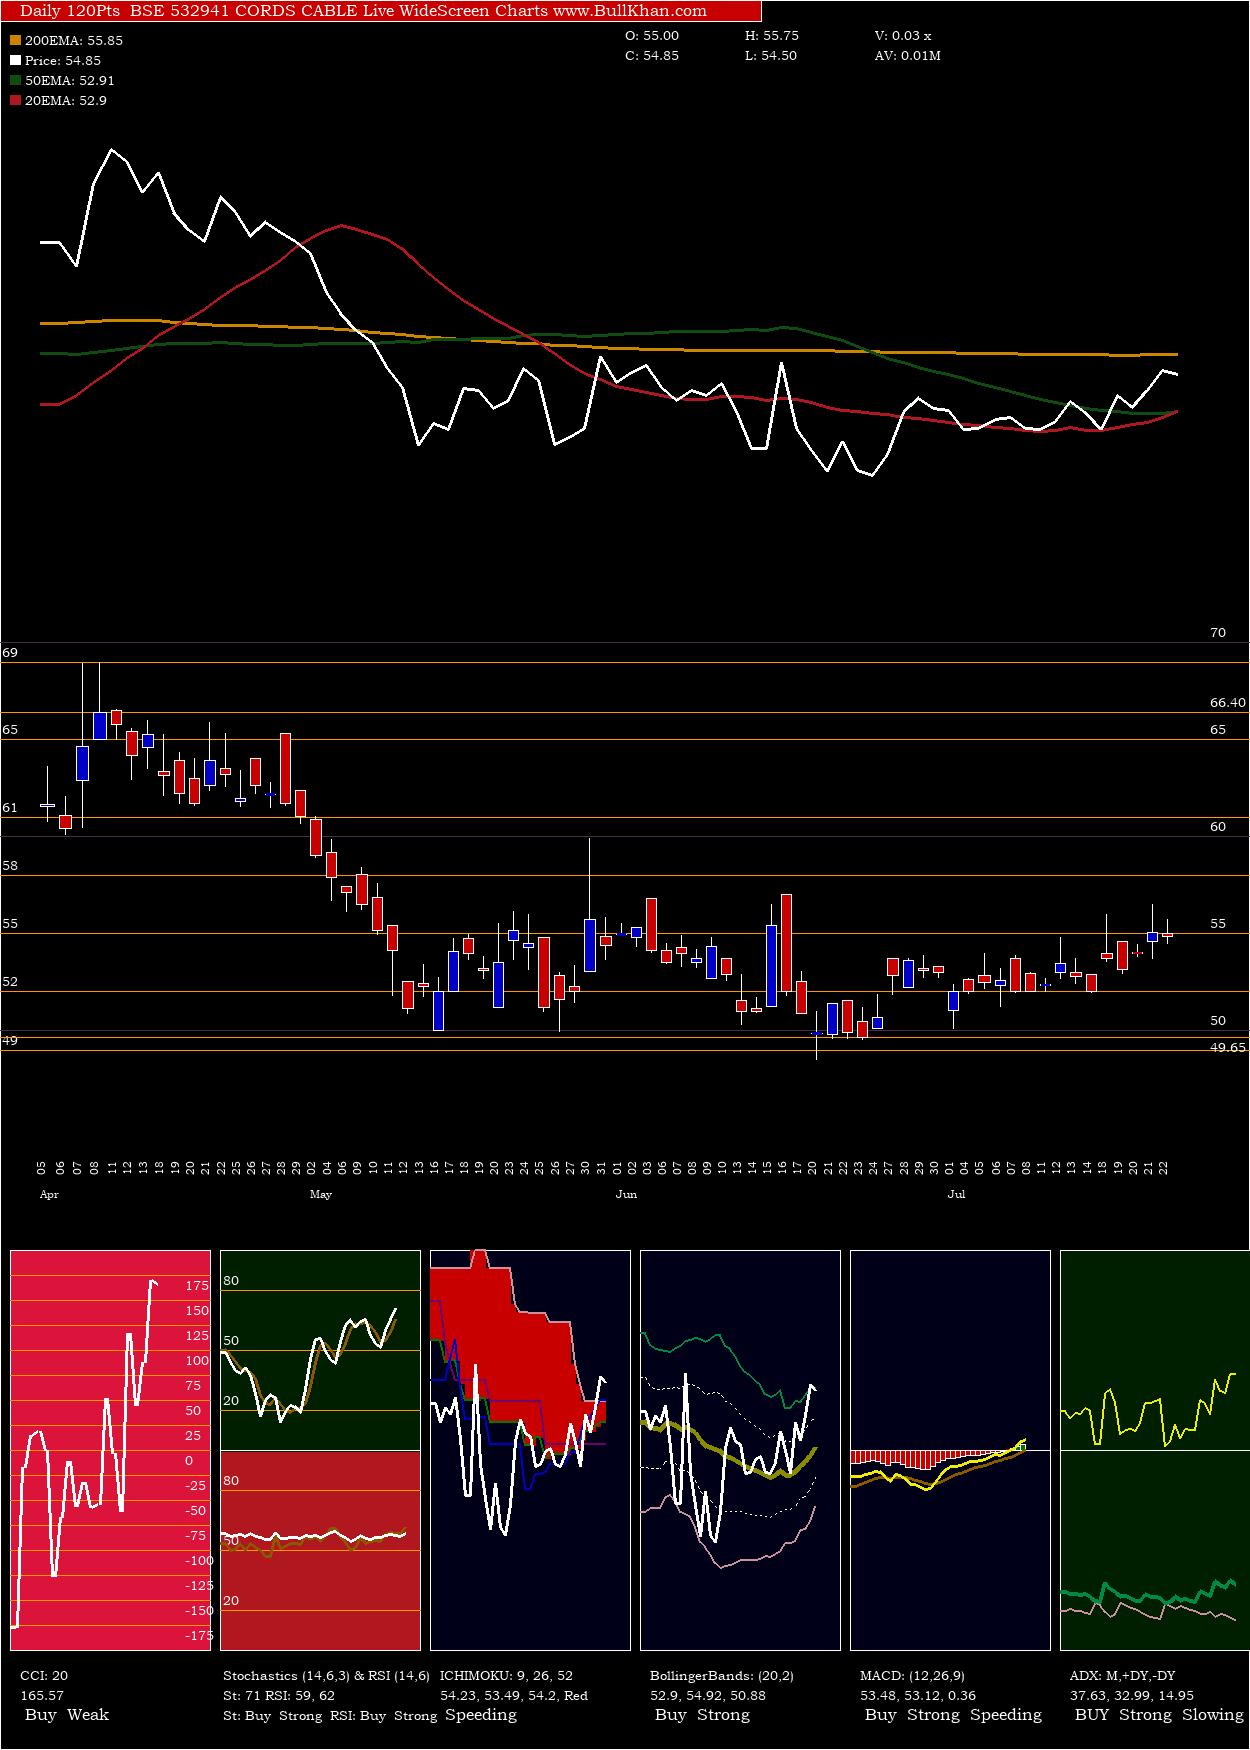 Cords Cable charts and indicators